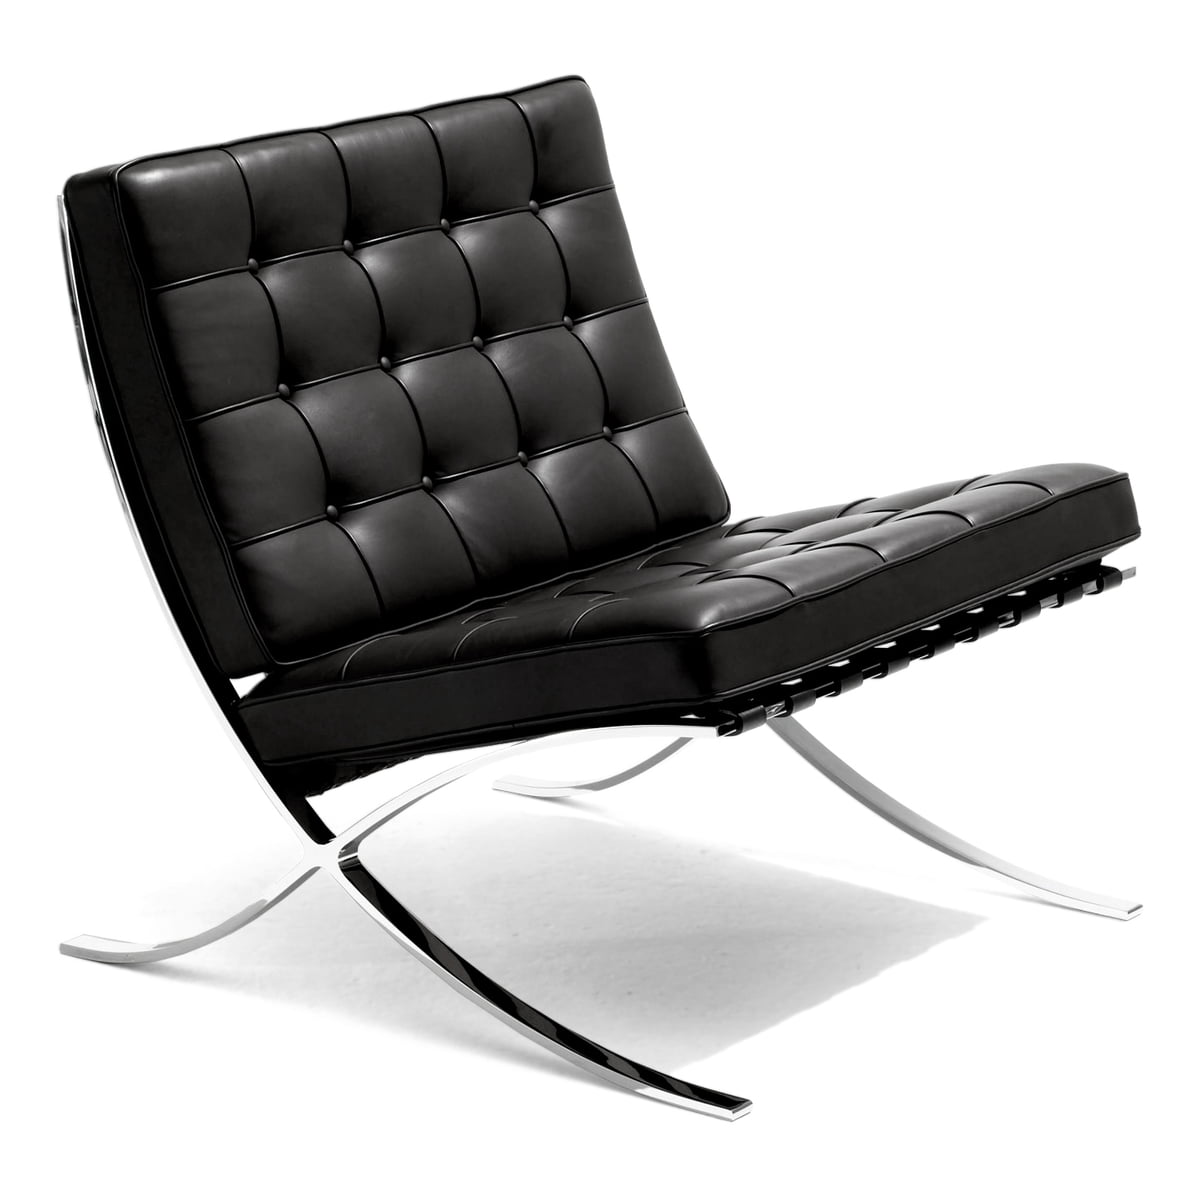 Sessel zeichnung  Barcelona Sessel | Knoll | connox.at